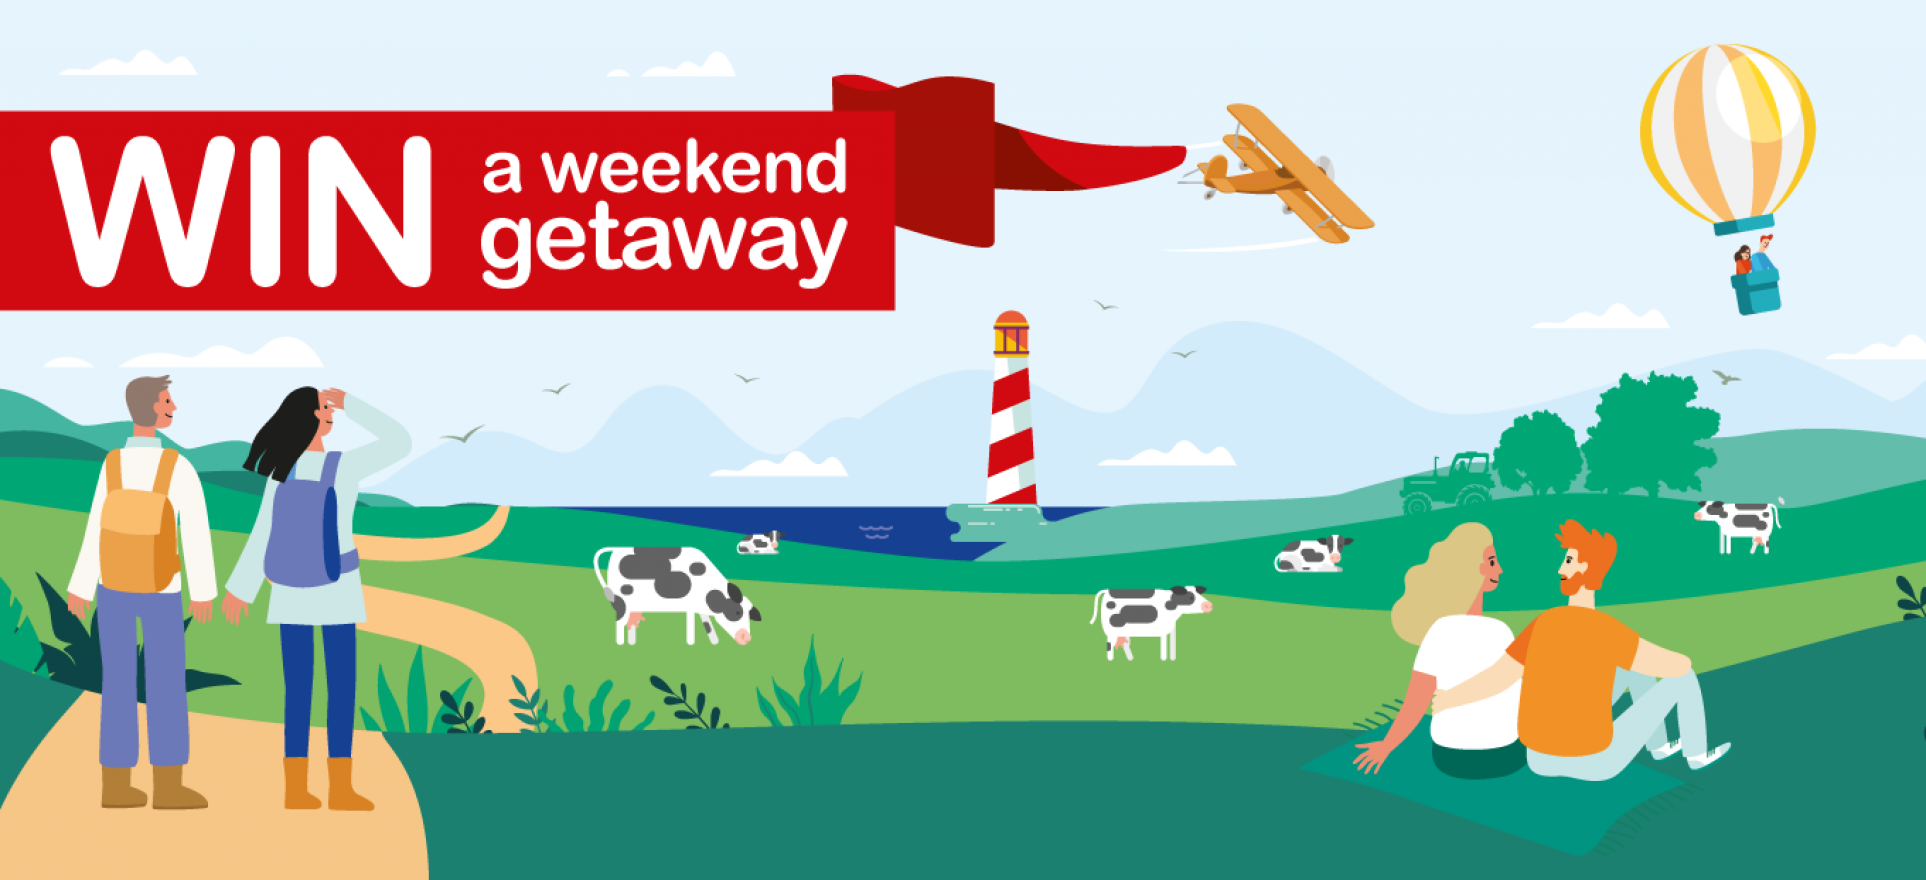 an image of win a weekend getaway banner